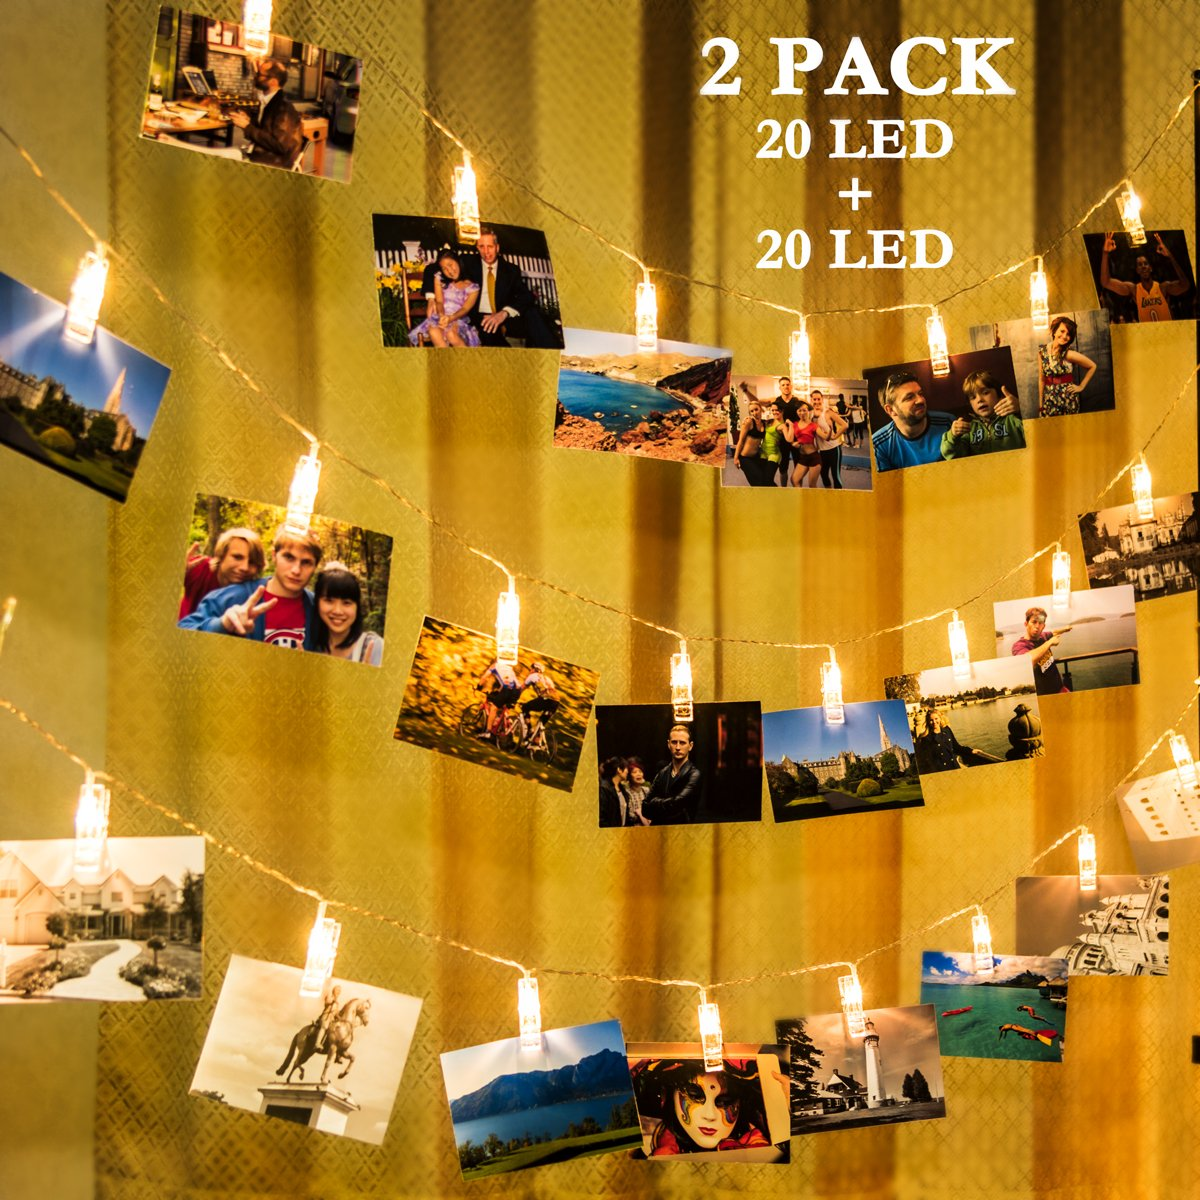 GIGALUMI 2 Pack Photo Clips String Lights, 20ft 20 LED Indoor Fairy String Lights for Hanging Photos Pictures Cards and Memos, Ideal Gift for Bedroom Decoration (USB Powered, Warm White)